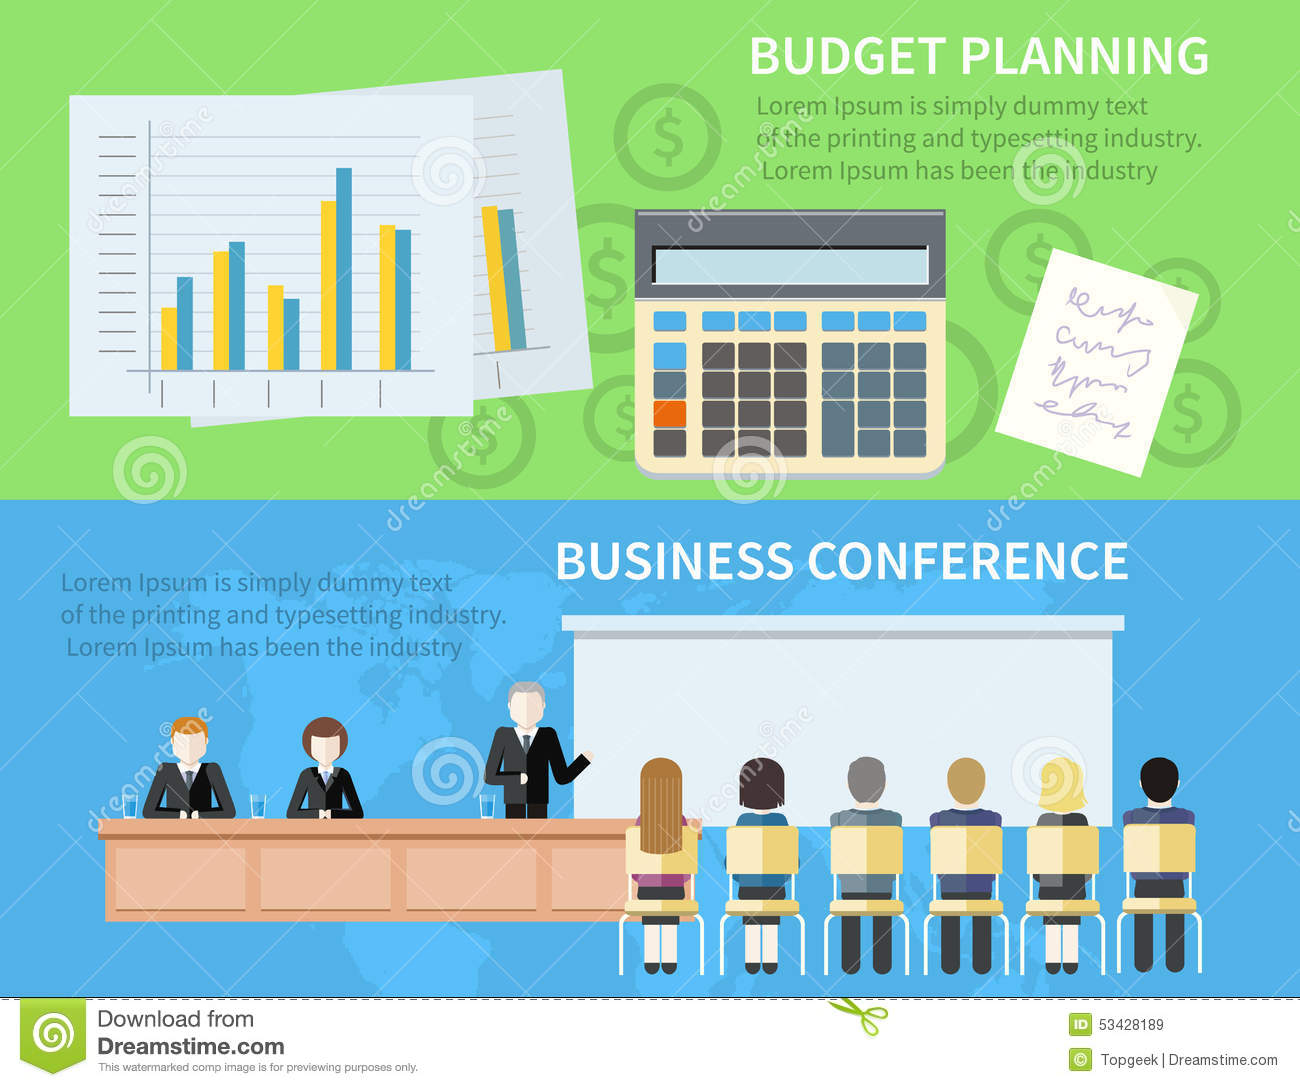 business conference and budget planning stock vector illustration